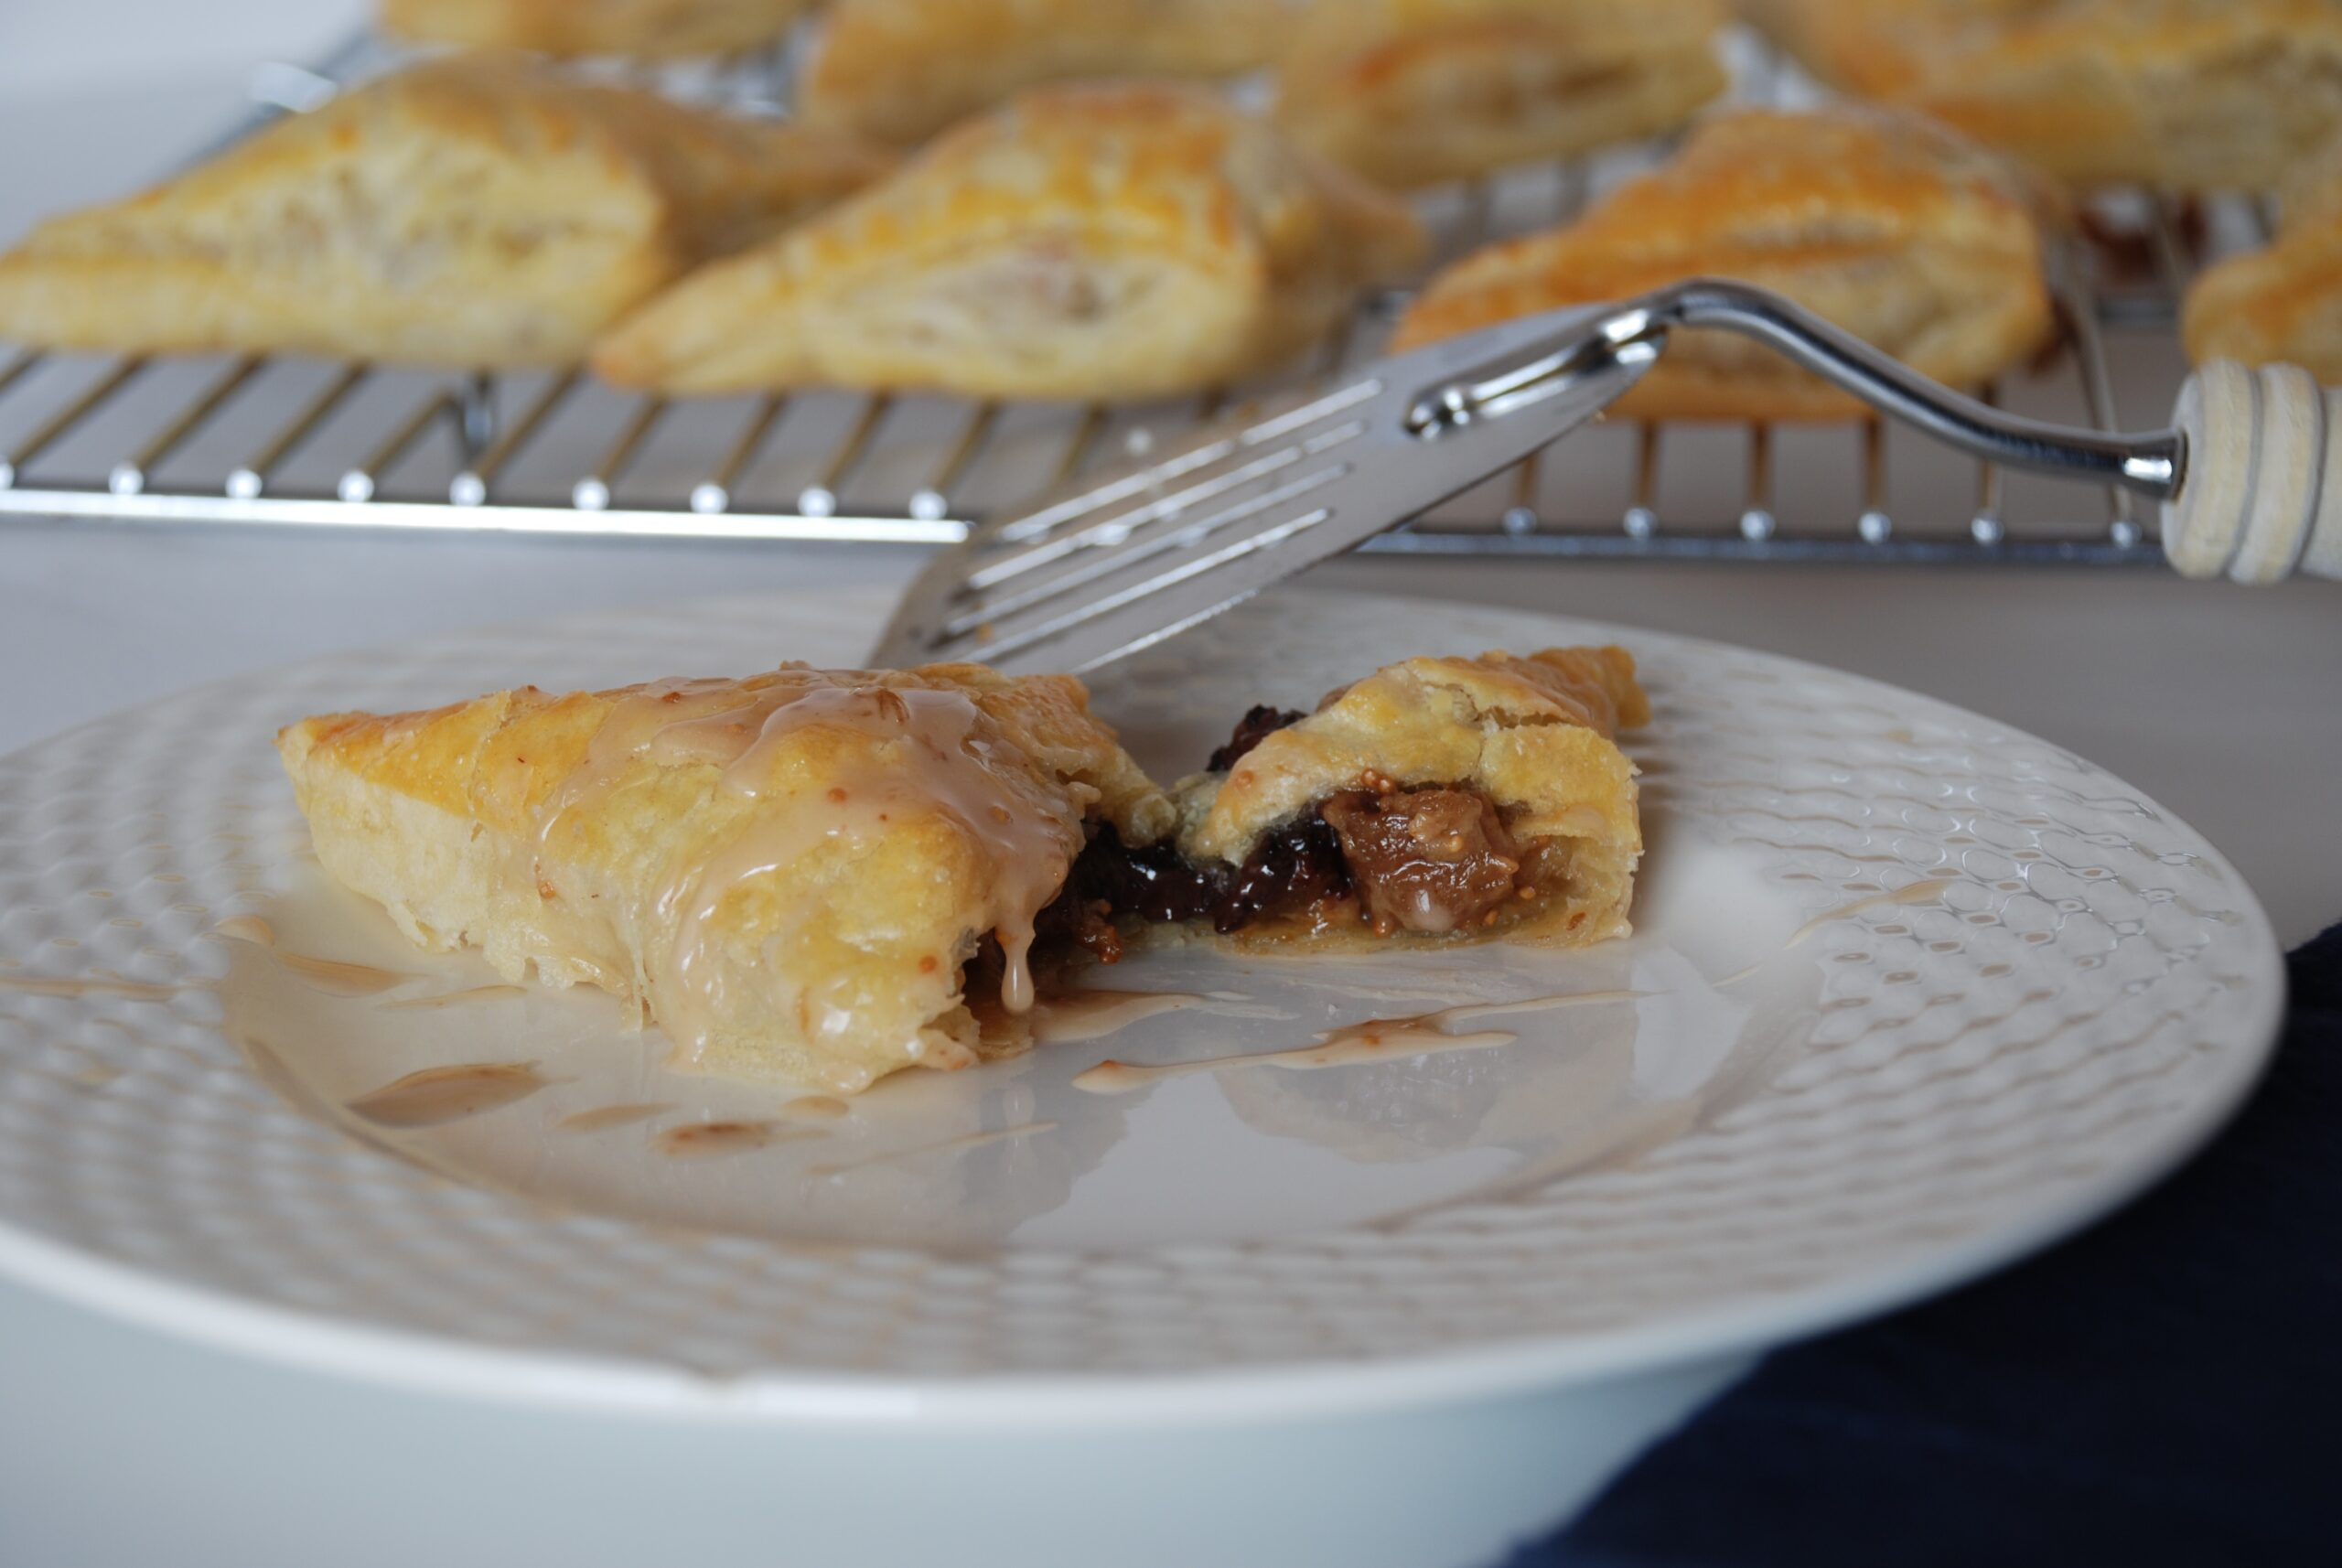 Buricche (Jewish-Italian Pastry Turnovers) with Drunken Figs and Mascarpone